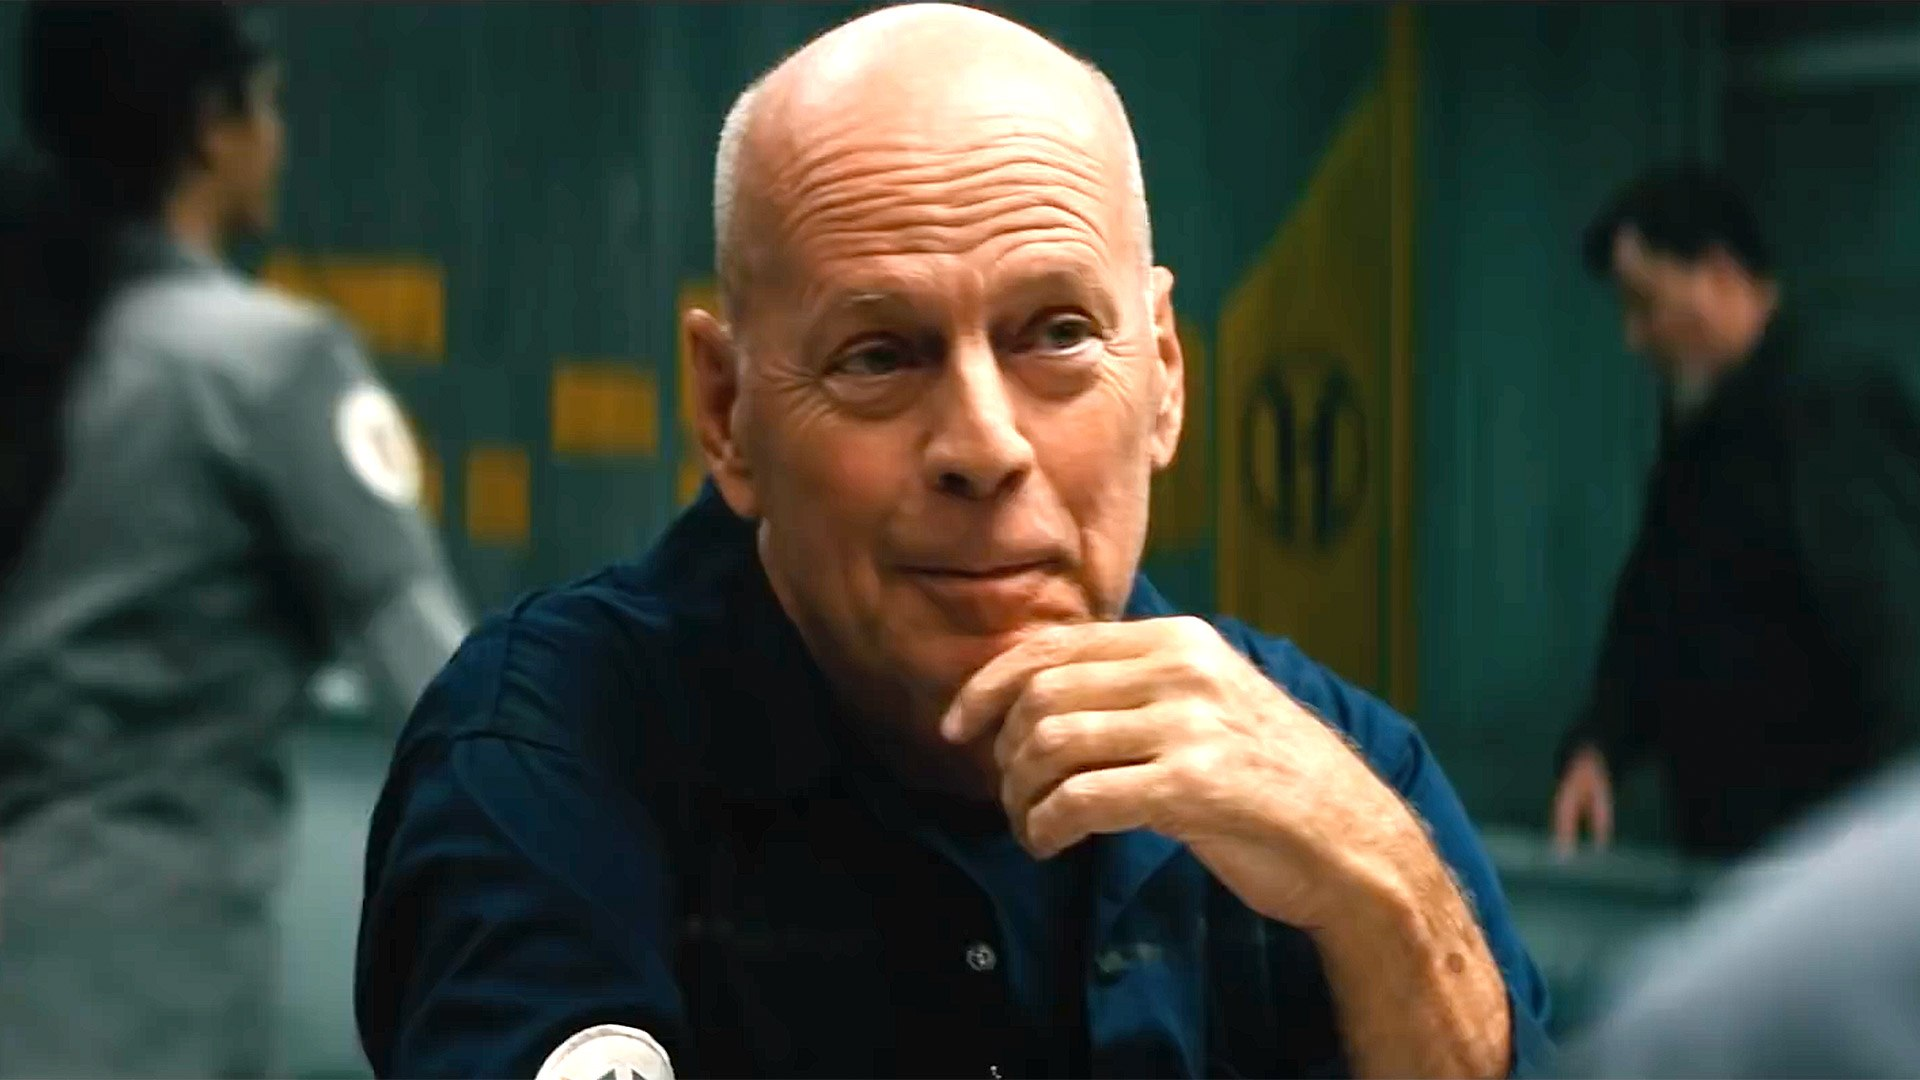 Breach with Bruce Willis - Official Trailer - video Dailymotion